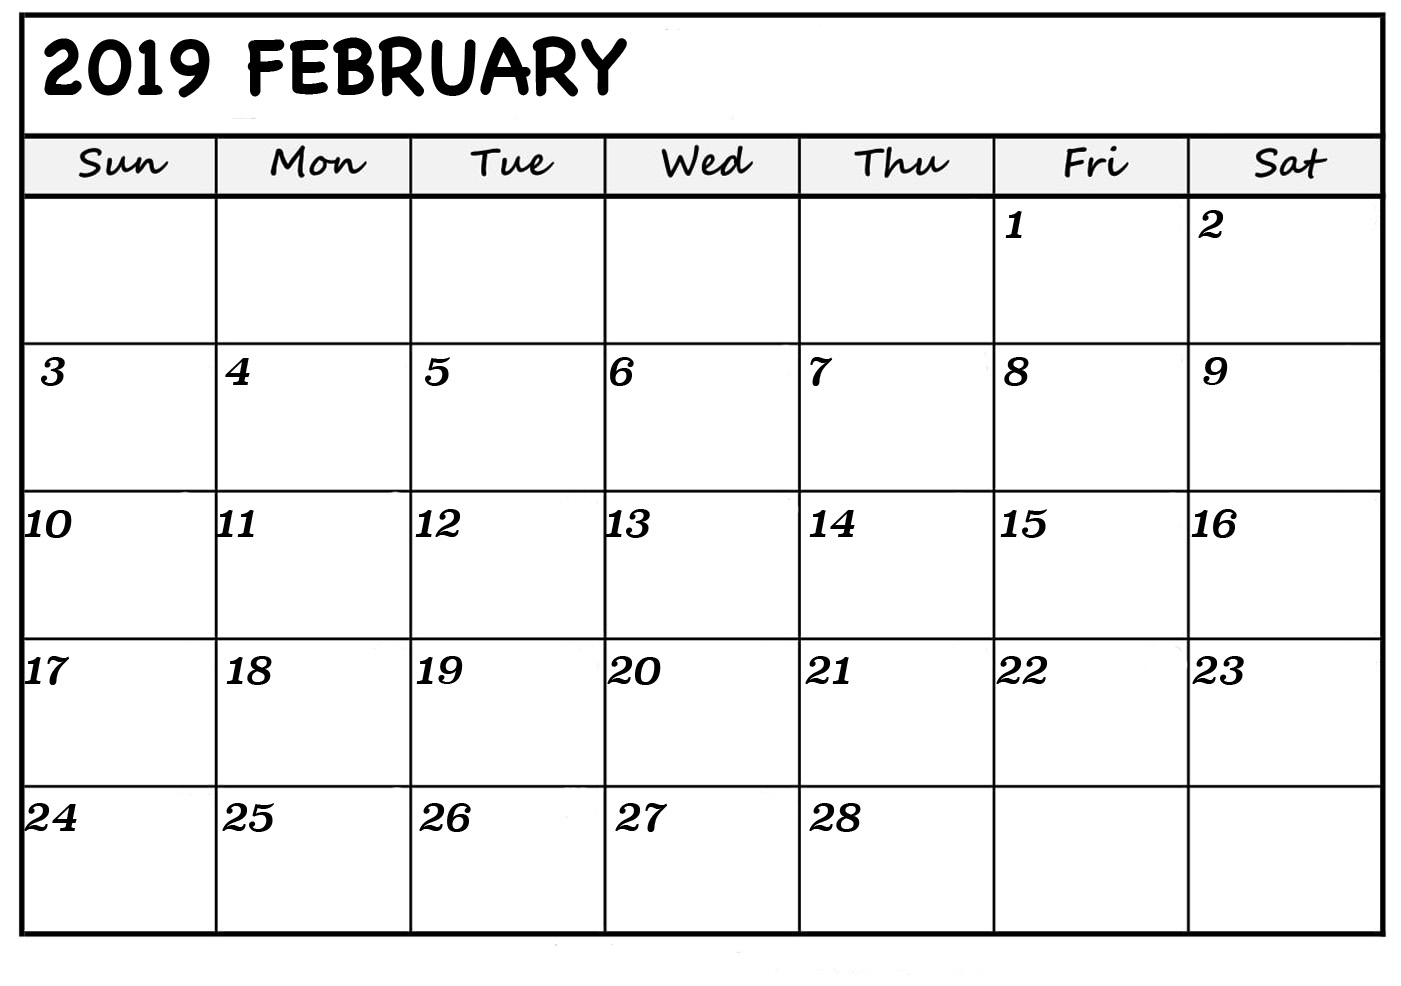 february 2019 template editable calendar download free december::February 2019 Calendar Fillable